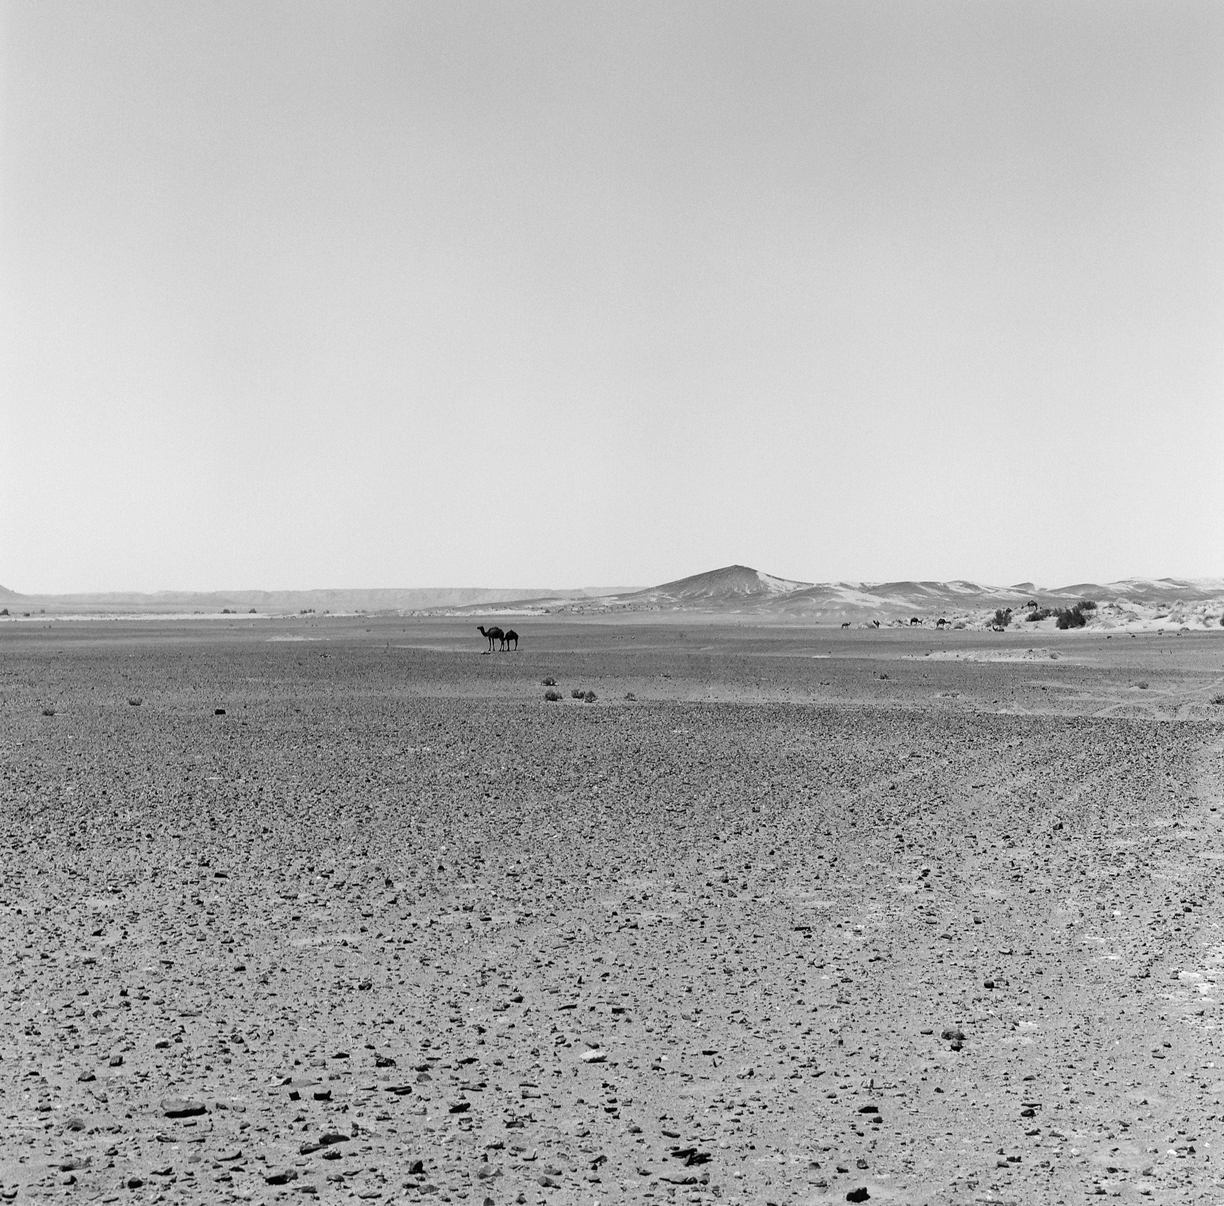 Black Rock Desert Ground and 2 Camels_Sahara_web.jpg